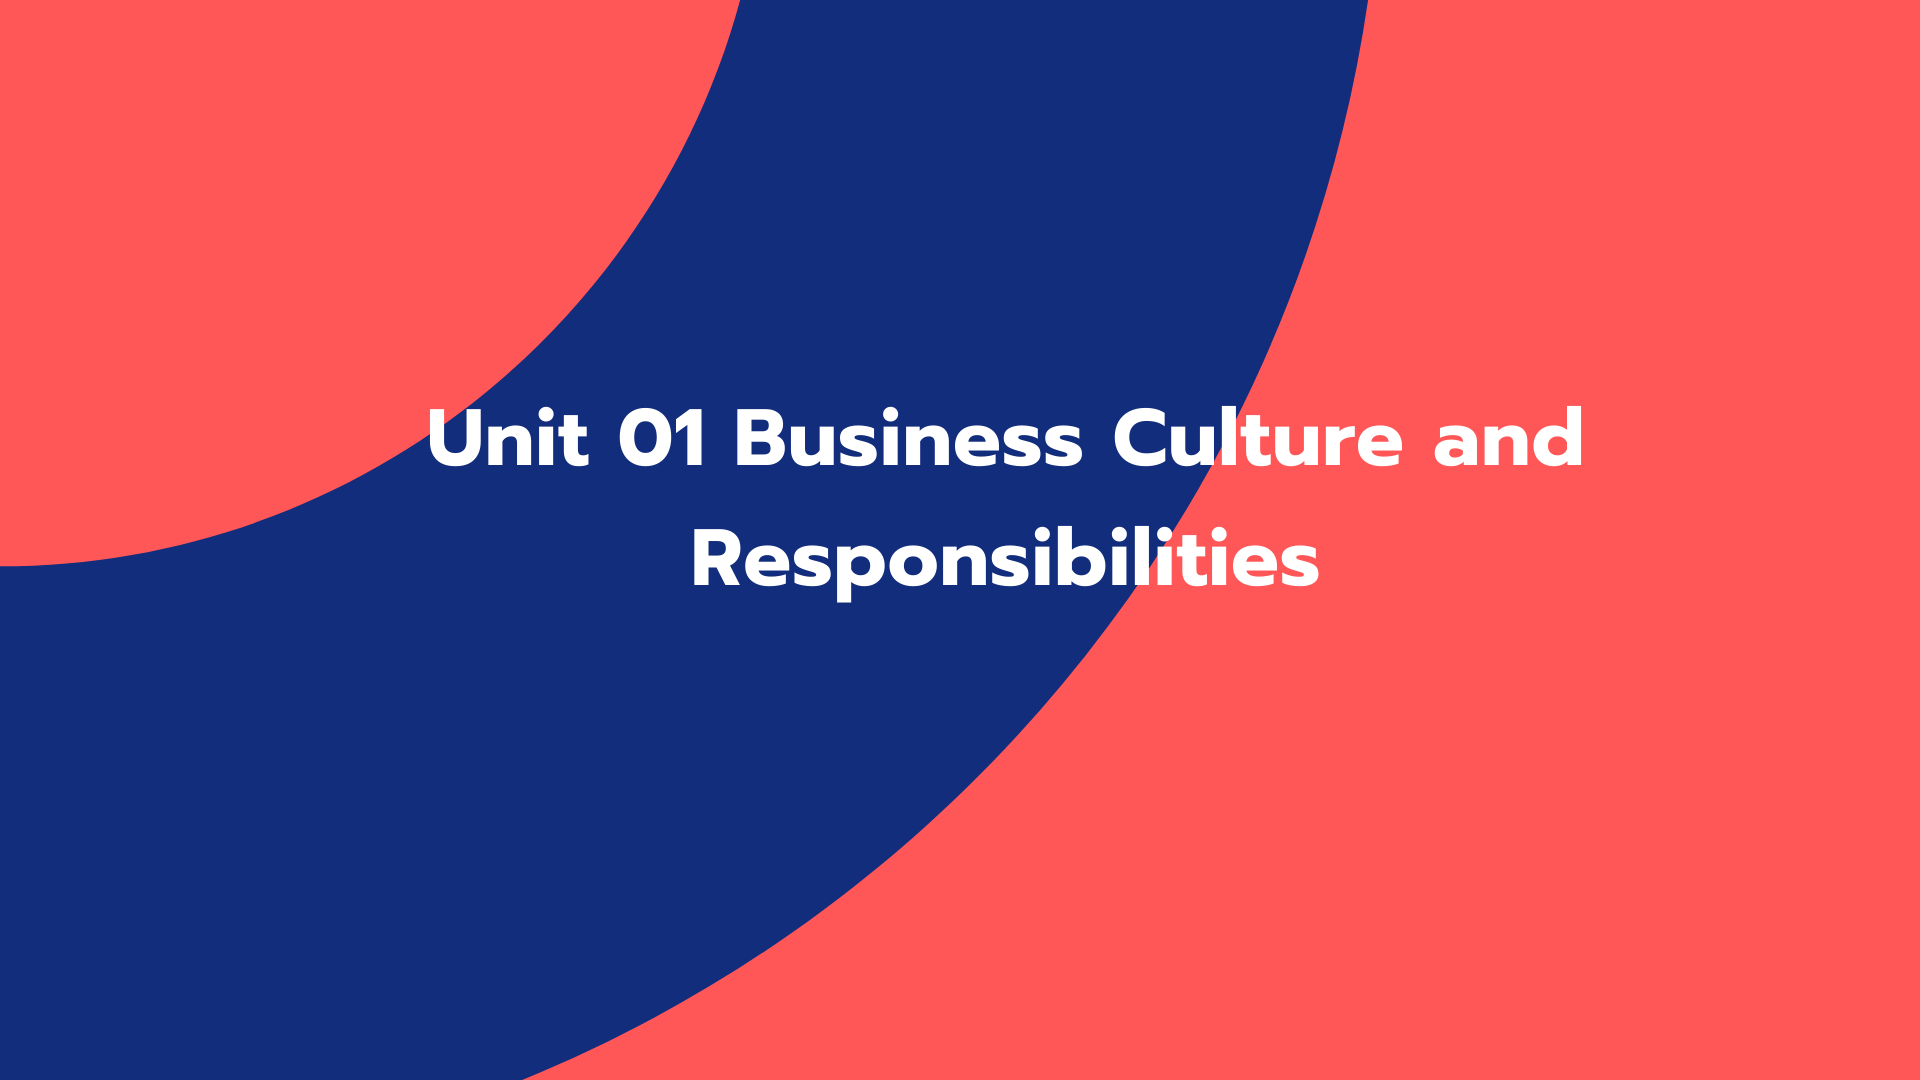 Business Culture and Responsibilities